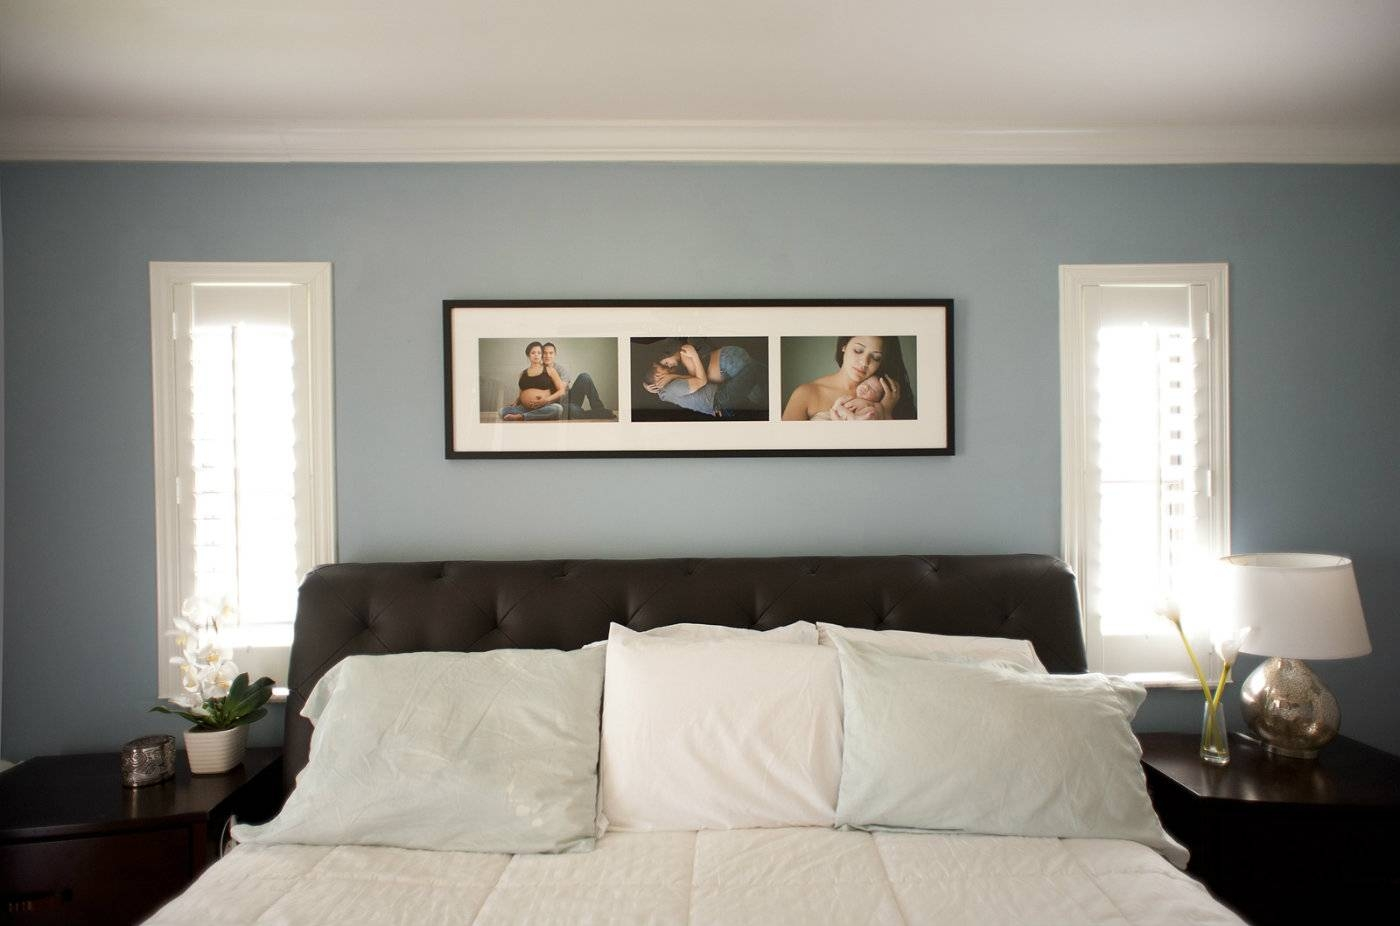 Elegant Master Bedroom Art Ideas Master Bedroom Wall Art 12400 Intended For Most Current Bed Wall Art (View 14 of 25)